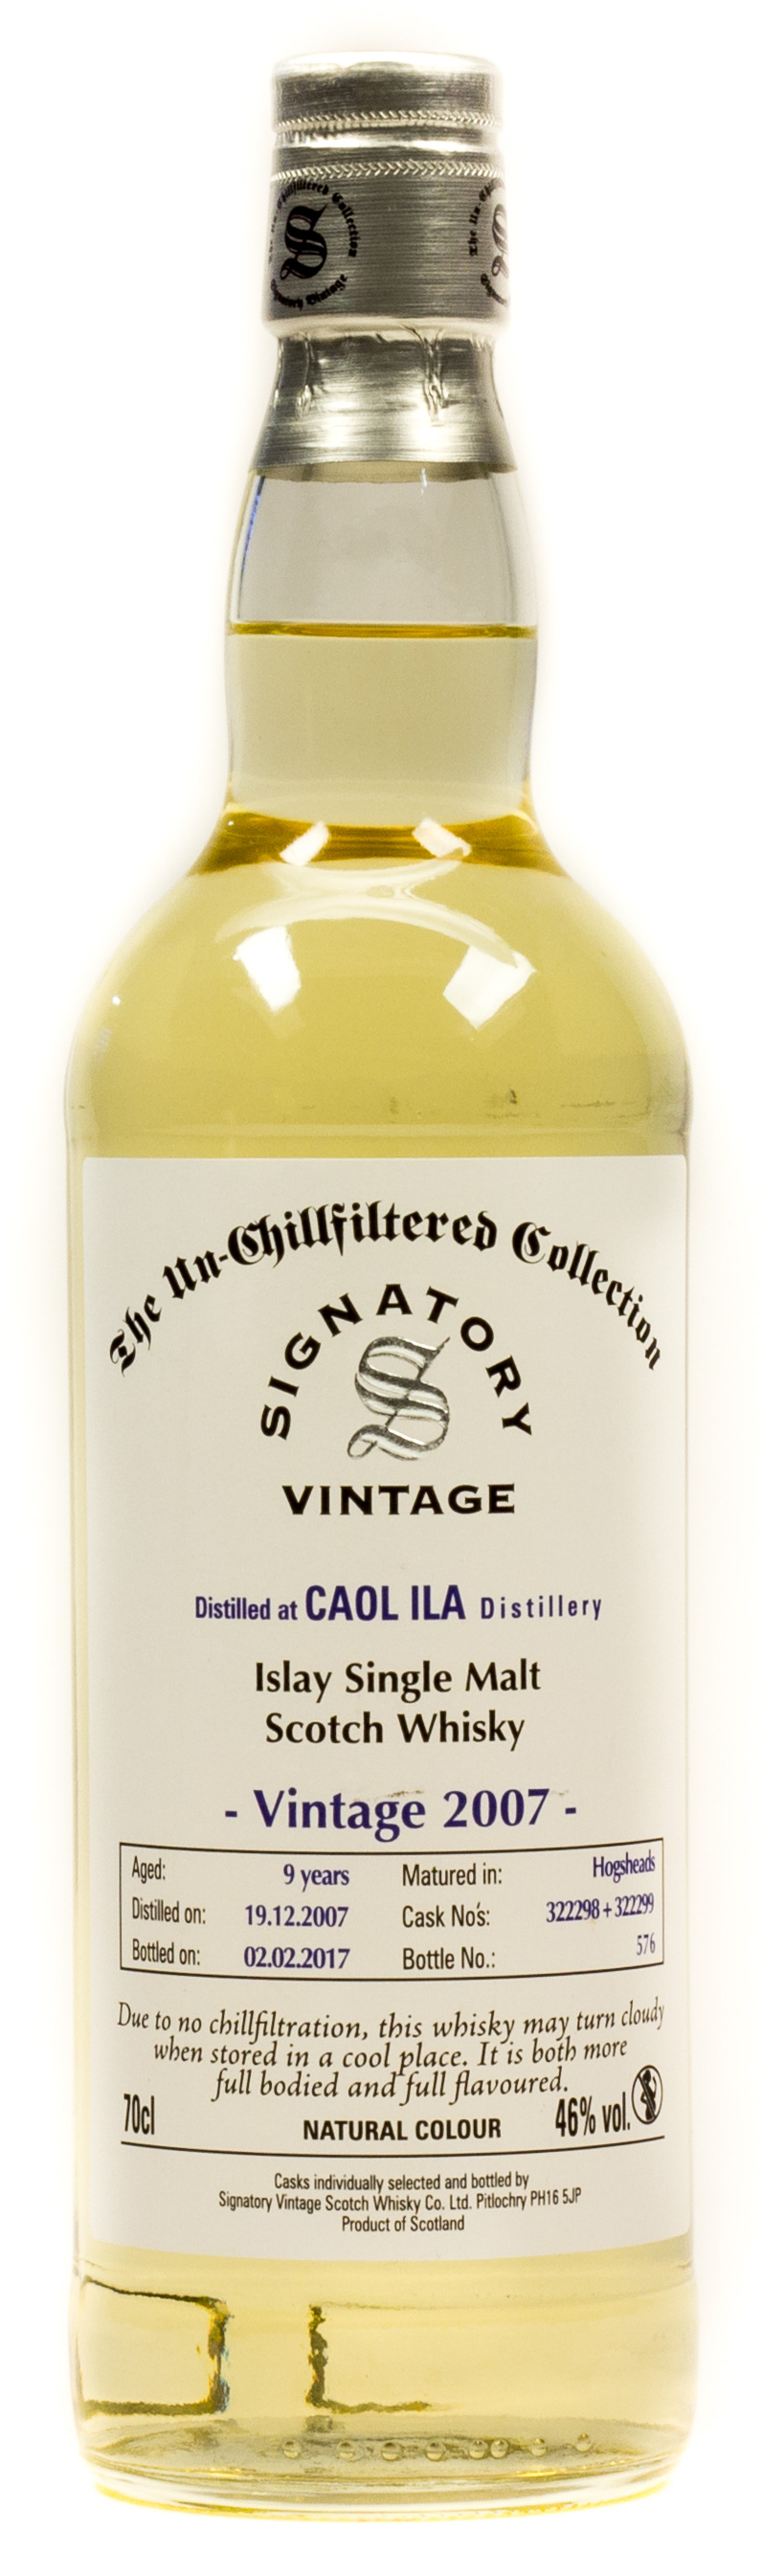 Signatory Vintage Caol Ila 9 Years Islay Single Malt Scotch Whisky 0,7 l